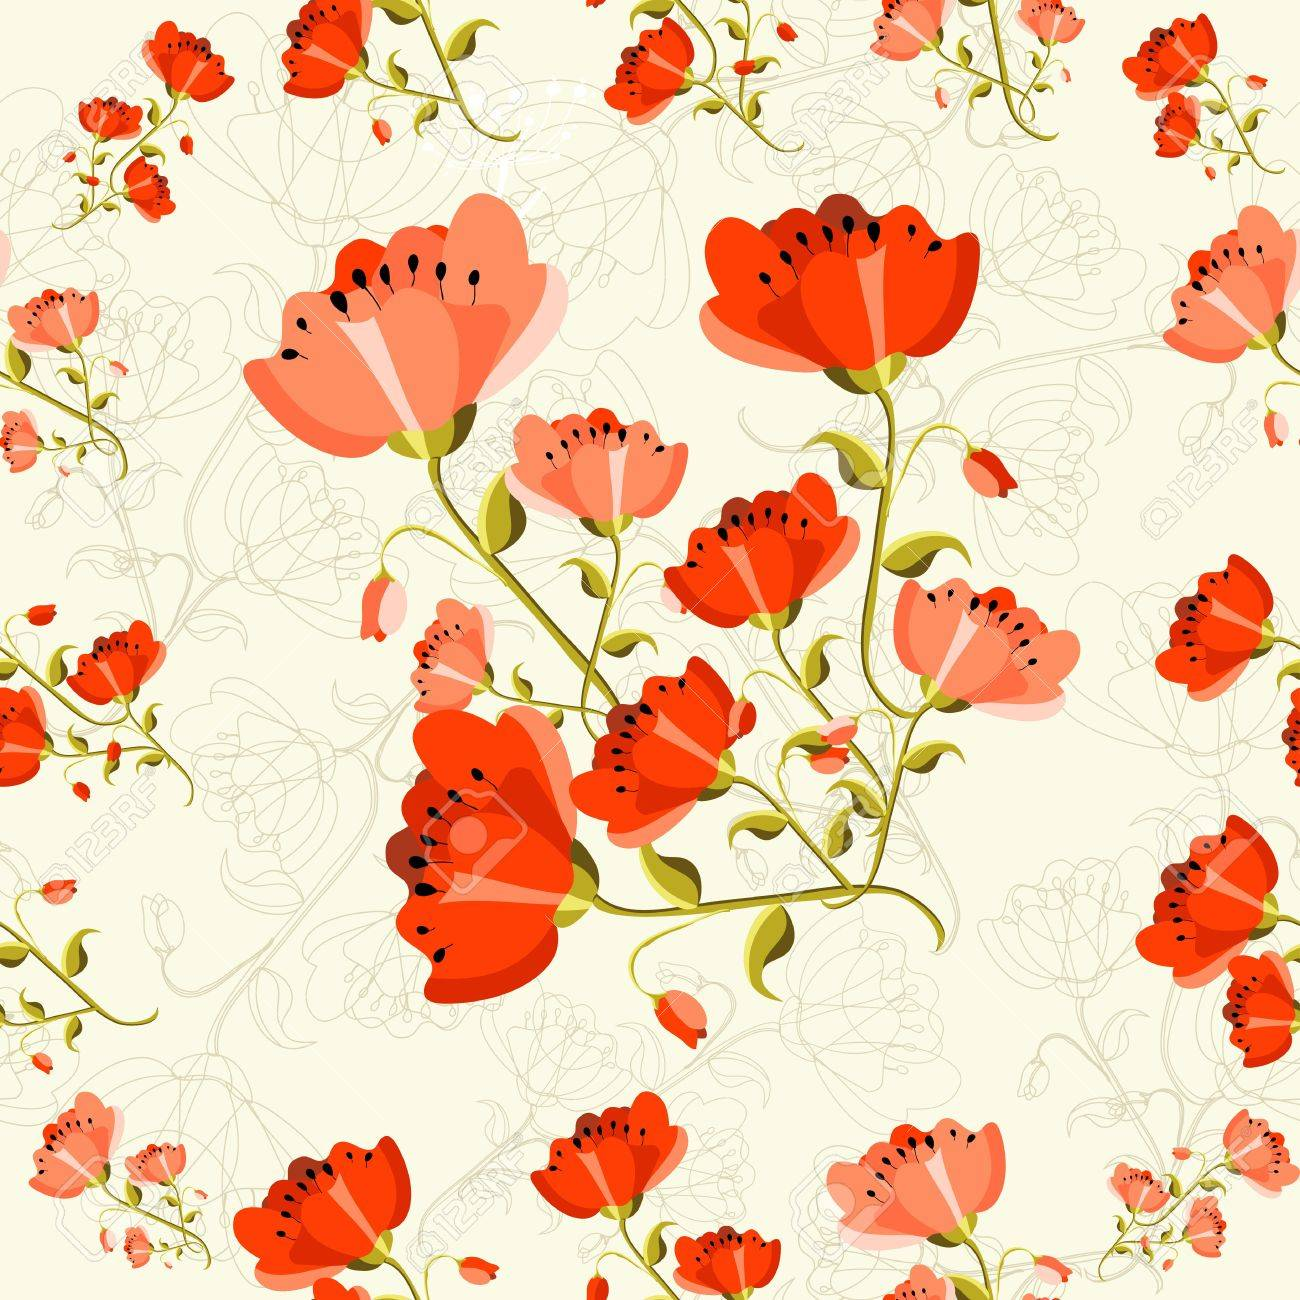 Cute seamless pattern poppy flower background. Vector illustration layered for easy manipulation and custom coloring. Stock Vector - 20603090